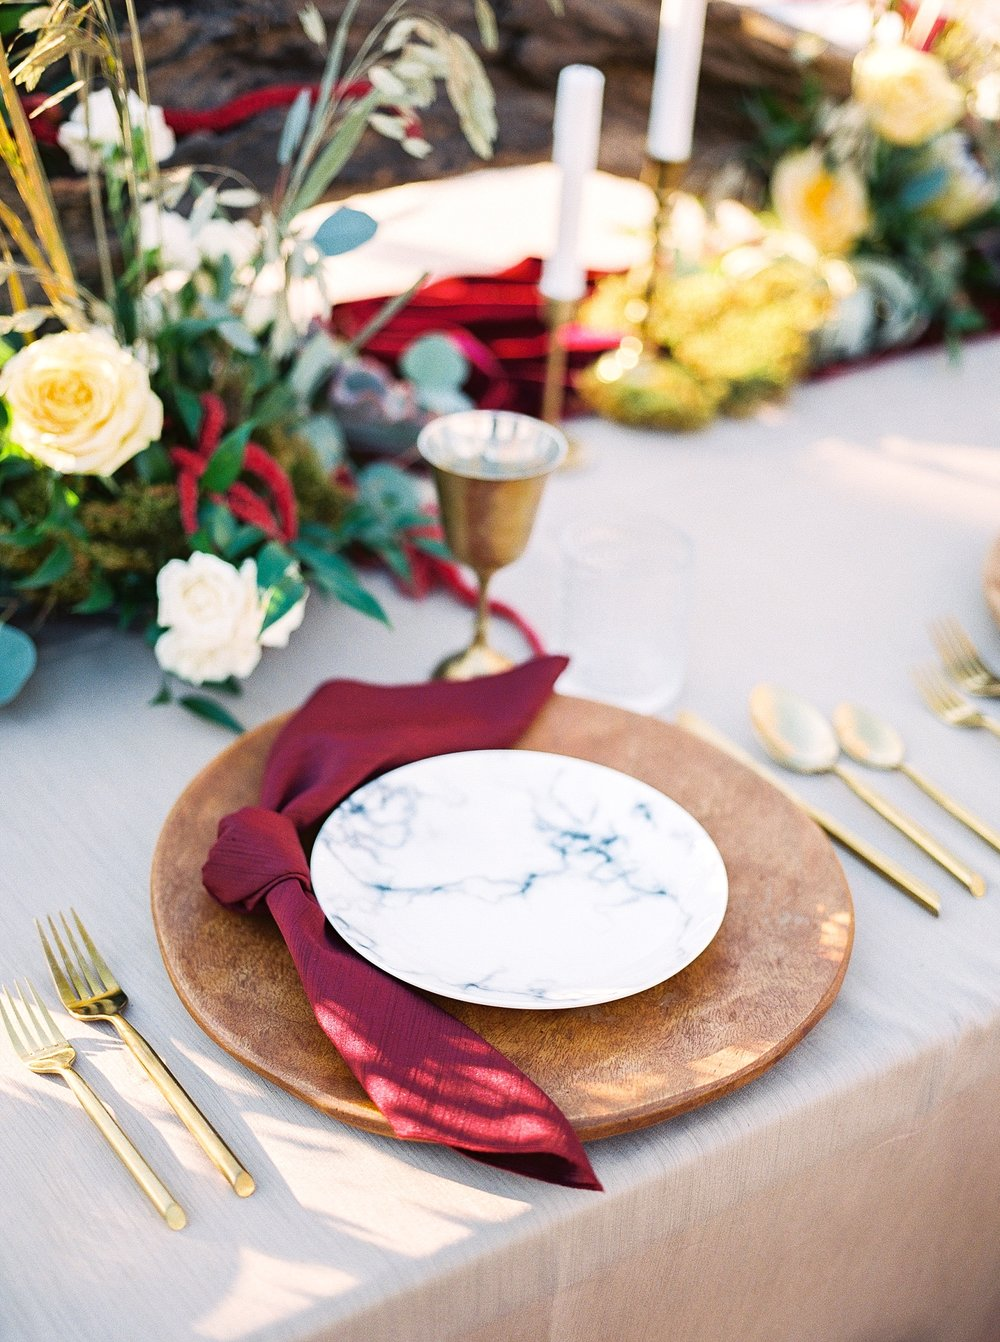 Snowy Winter Wedding at Wildcliff Events Lake With Earthy Jewel Tones and Organic Refined Style by Kelsi Kliethermes Photography Kansas City Missouri Wedding Photographer_0156.jpg